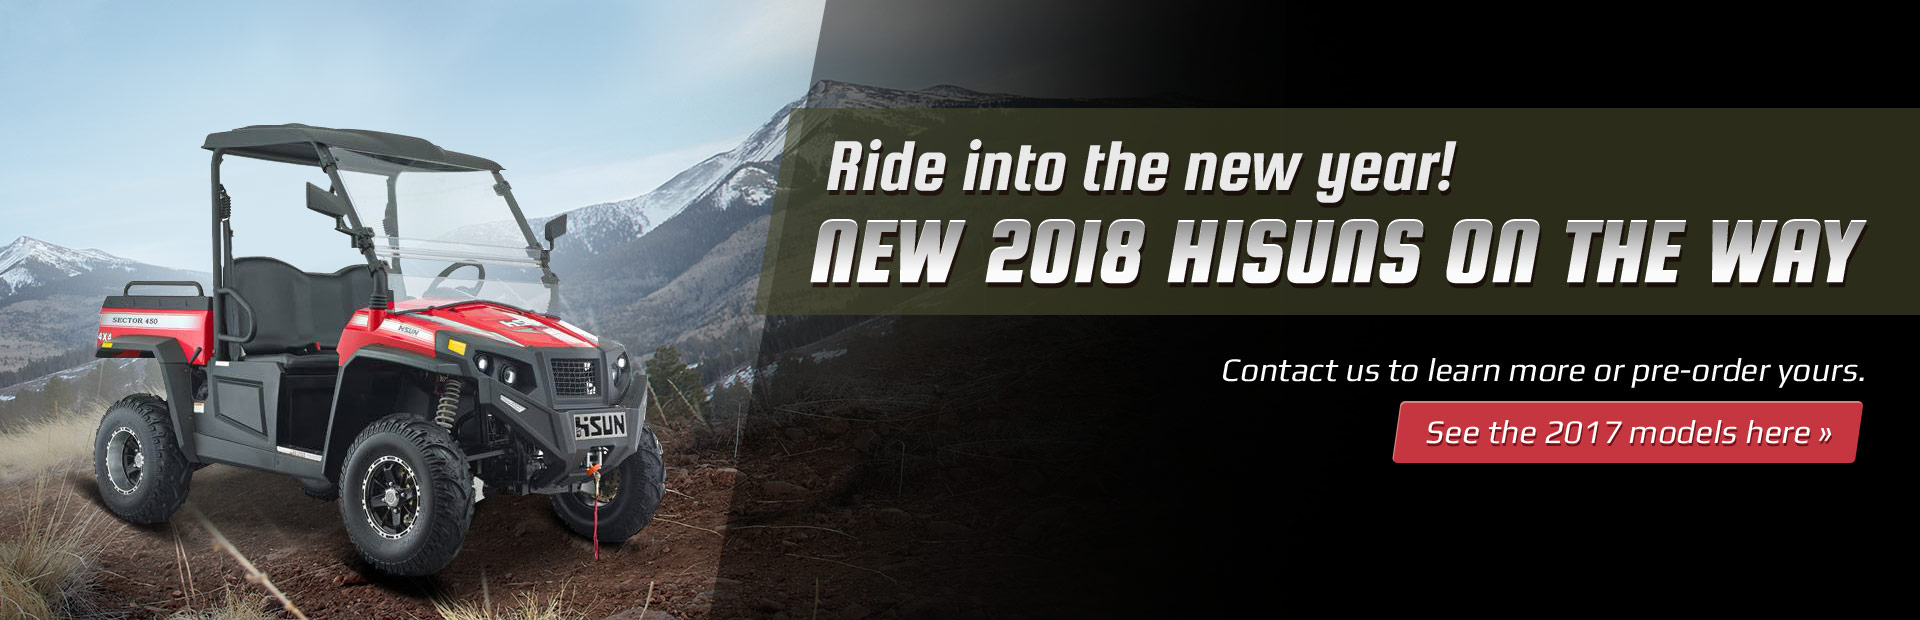 The new 2018 Hisun models are on the way! Contact us to learn more or pre-order yours. Click here to see the 2017 models.